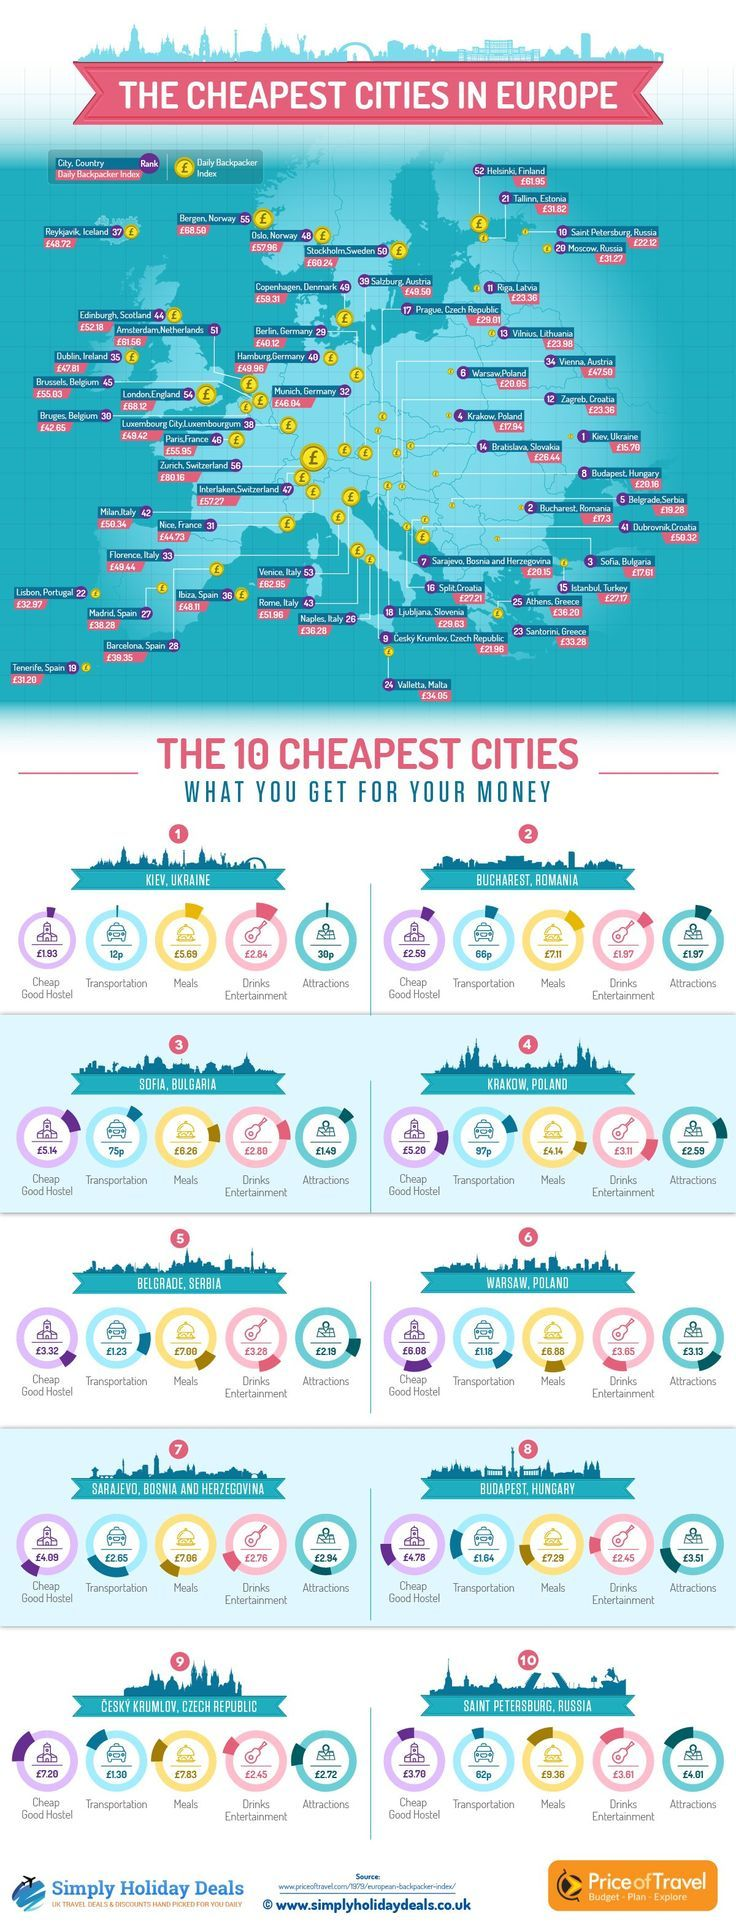 The 10 cheapest cities in Europe.